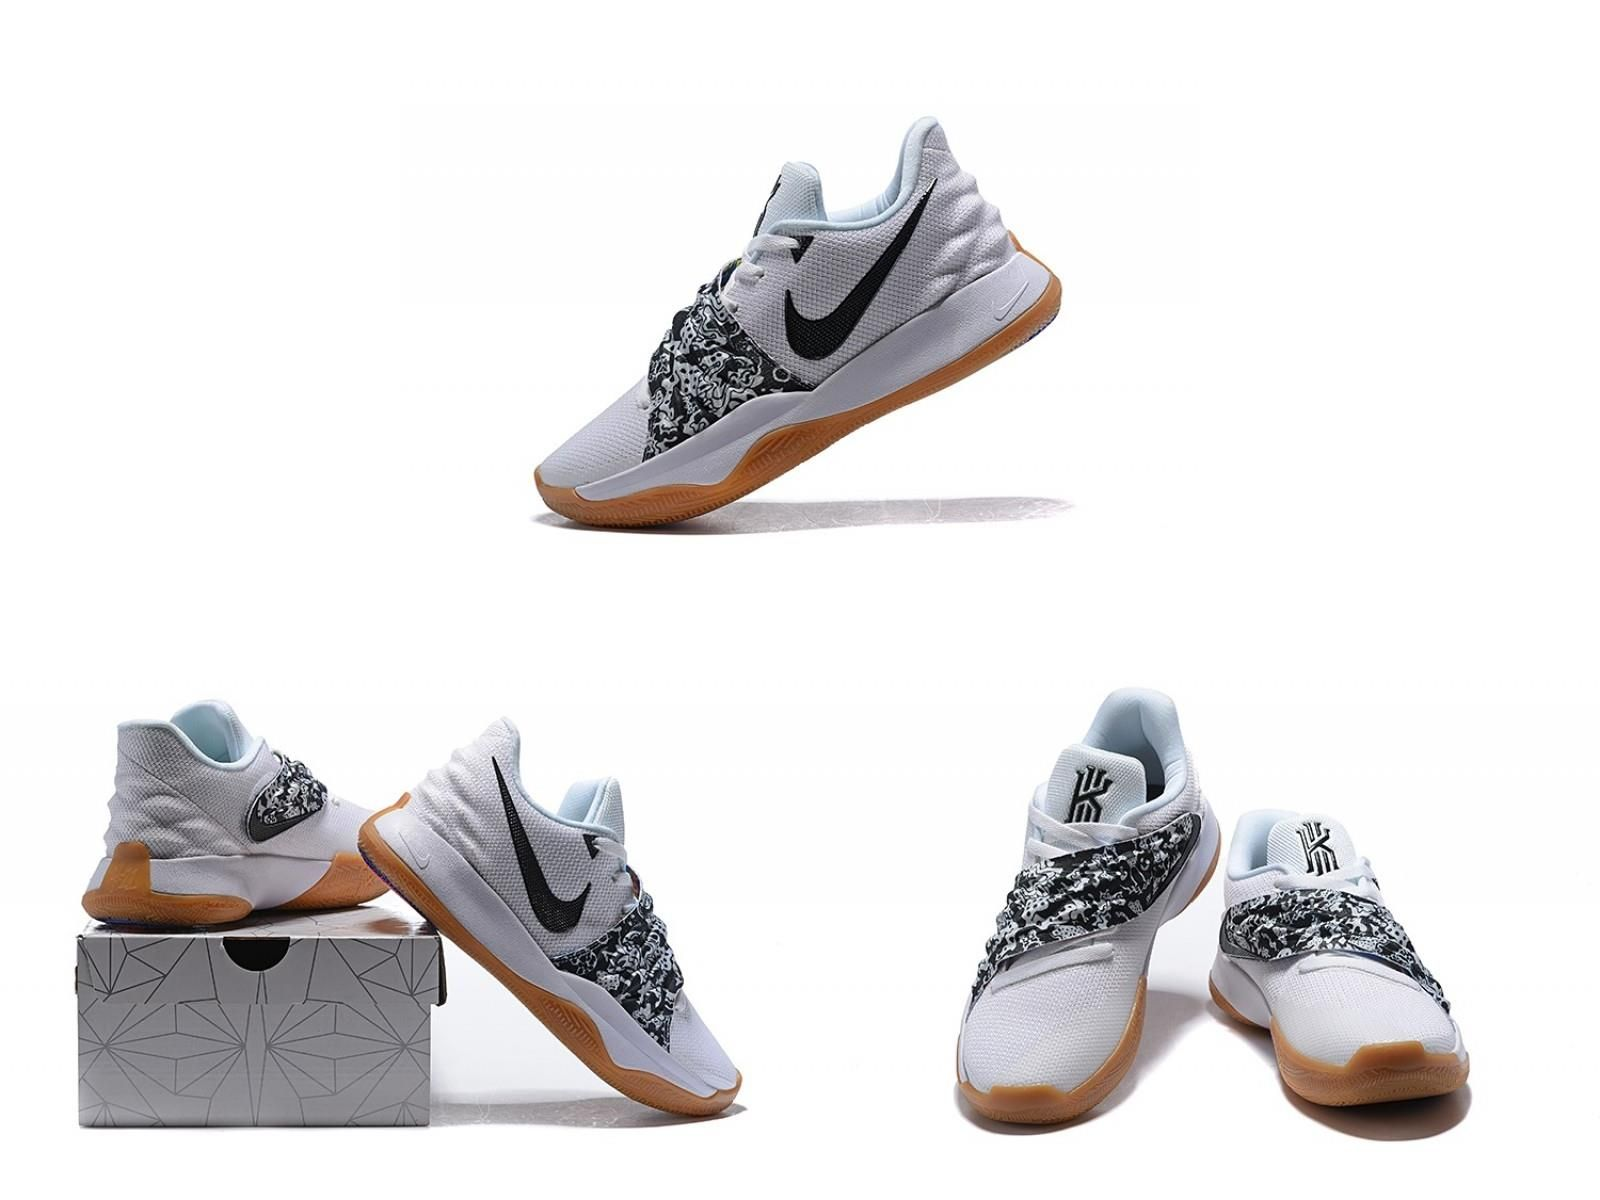 the nike Kyrie 4 Limited Edition Basketball Shoes For Men(Black)